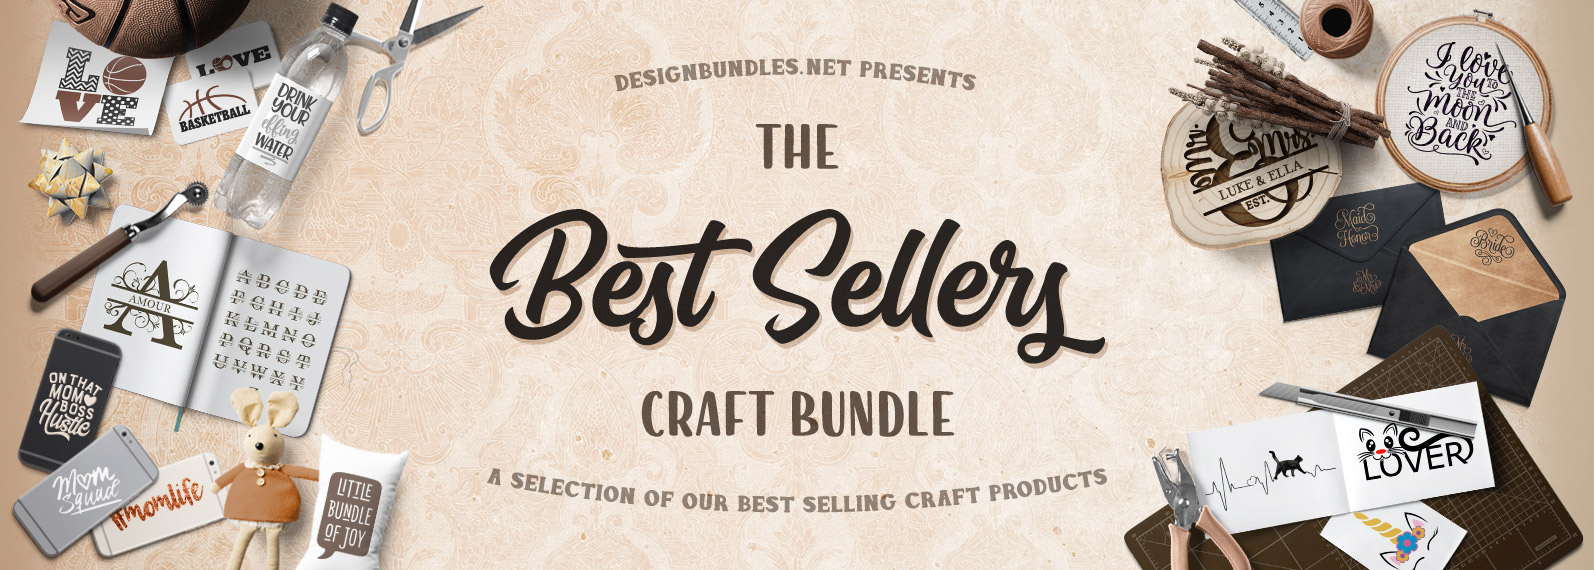 The Best Seller Craft Bundle Cover